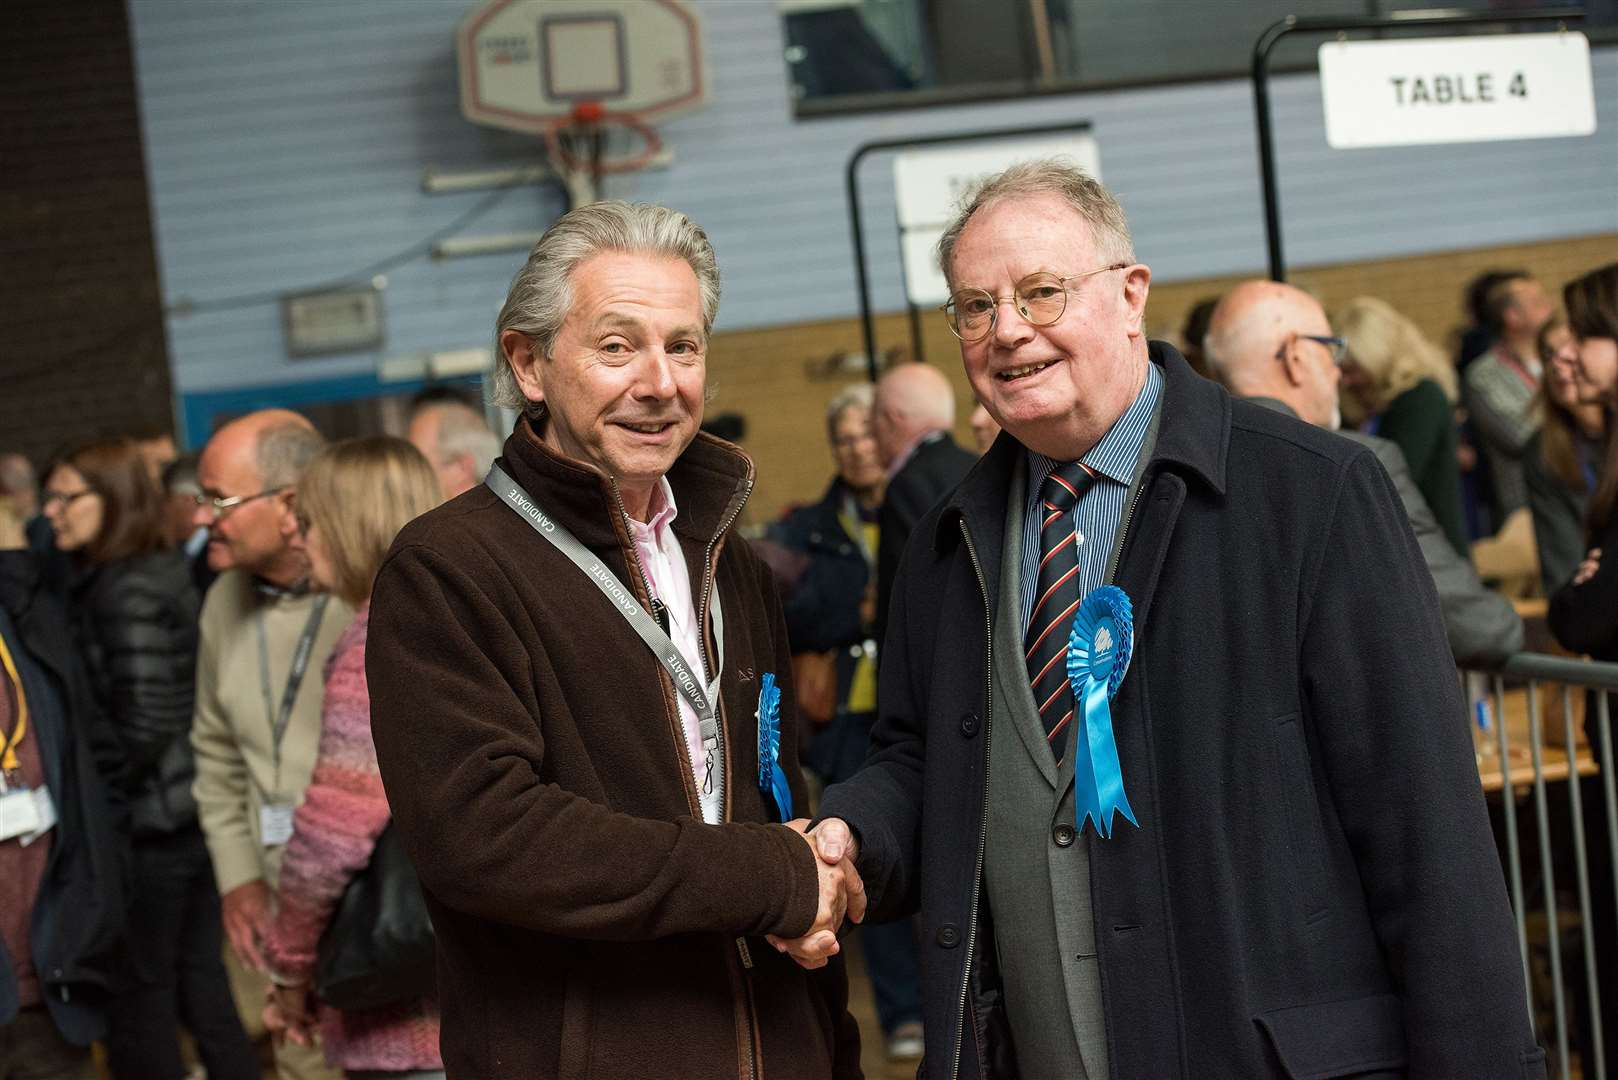 Cllr Andy Drummond and Cllr James Lay